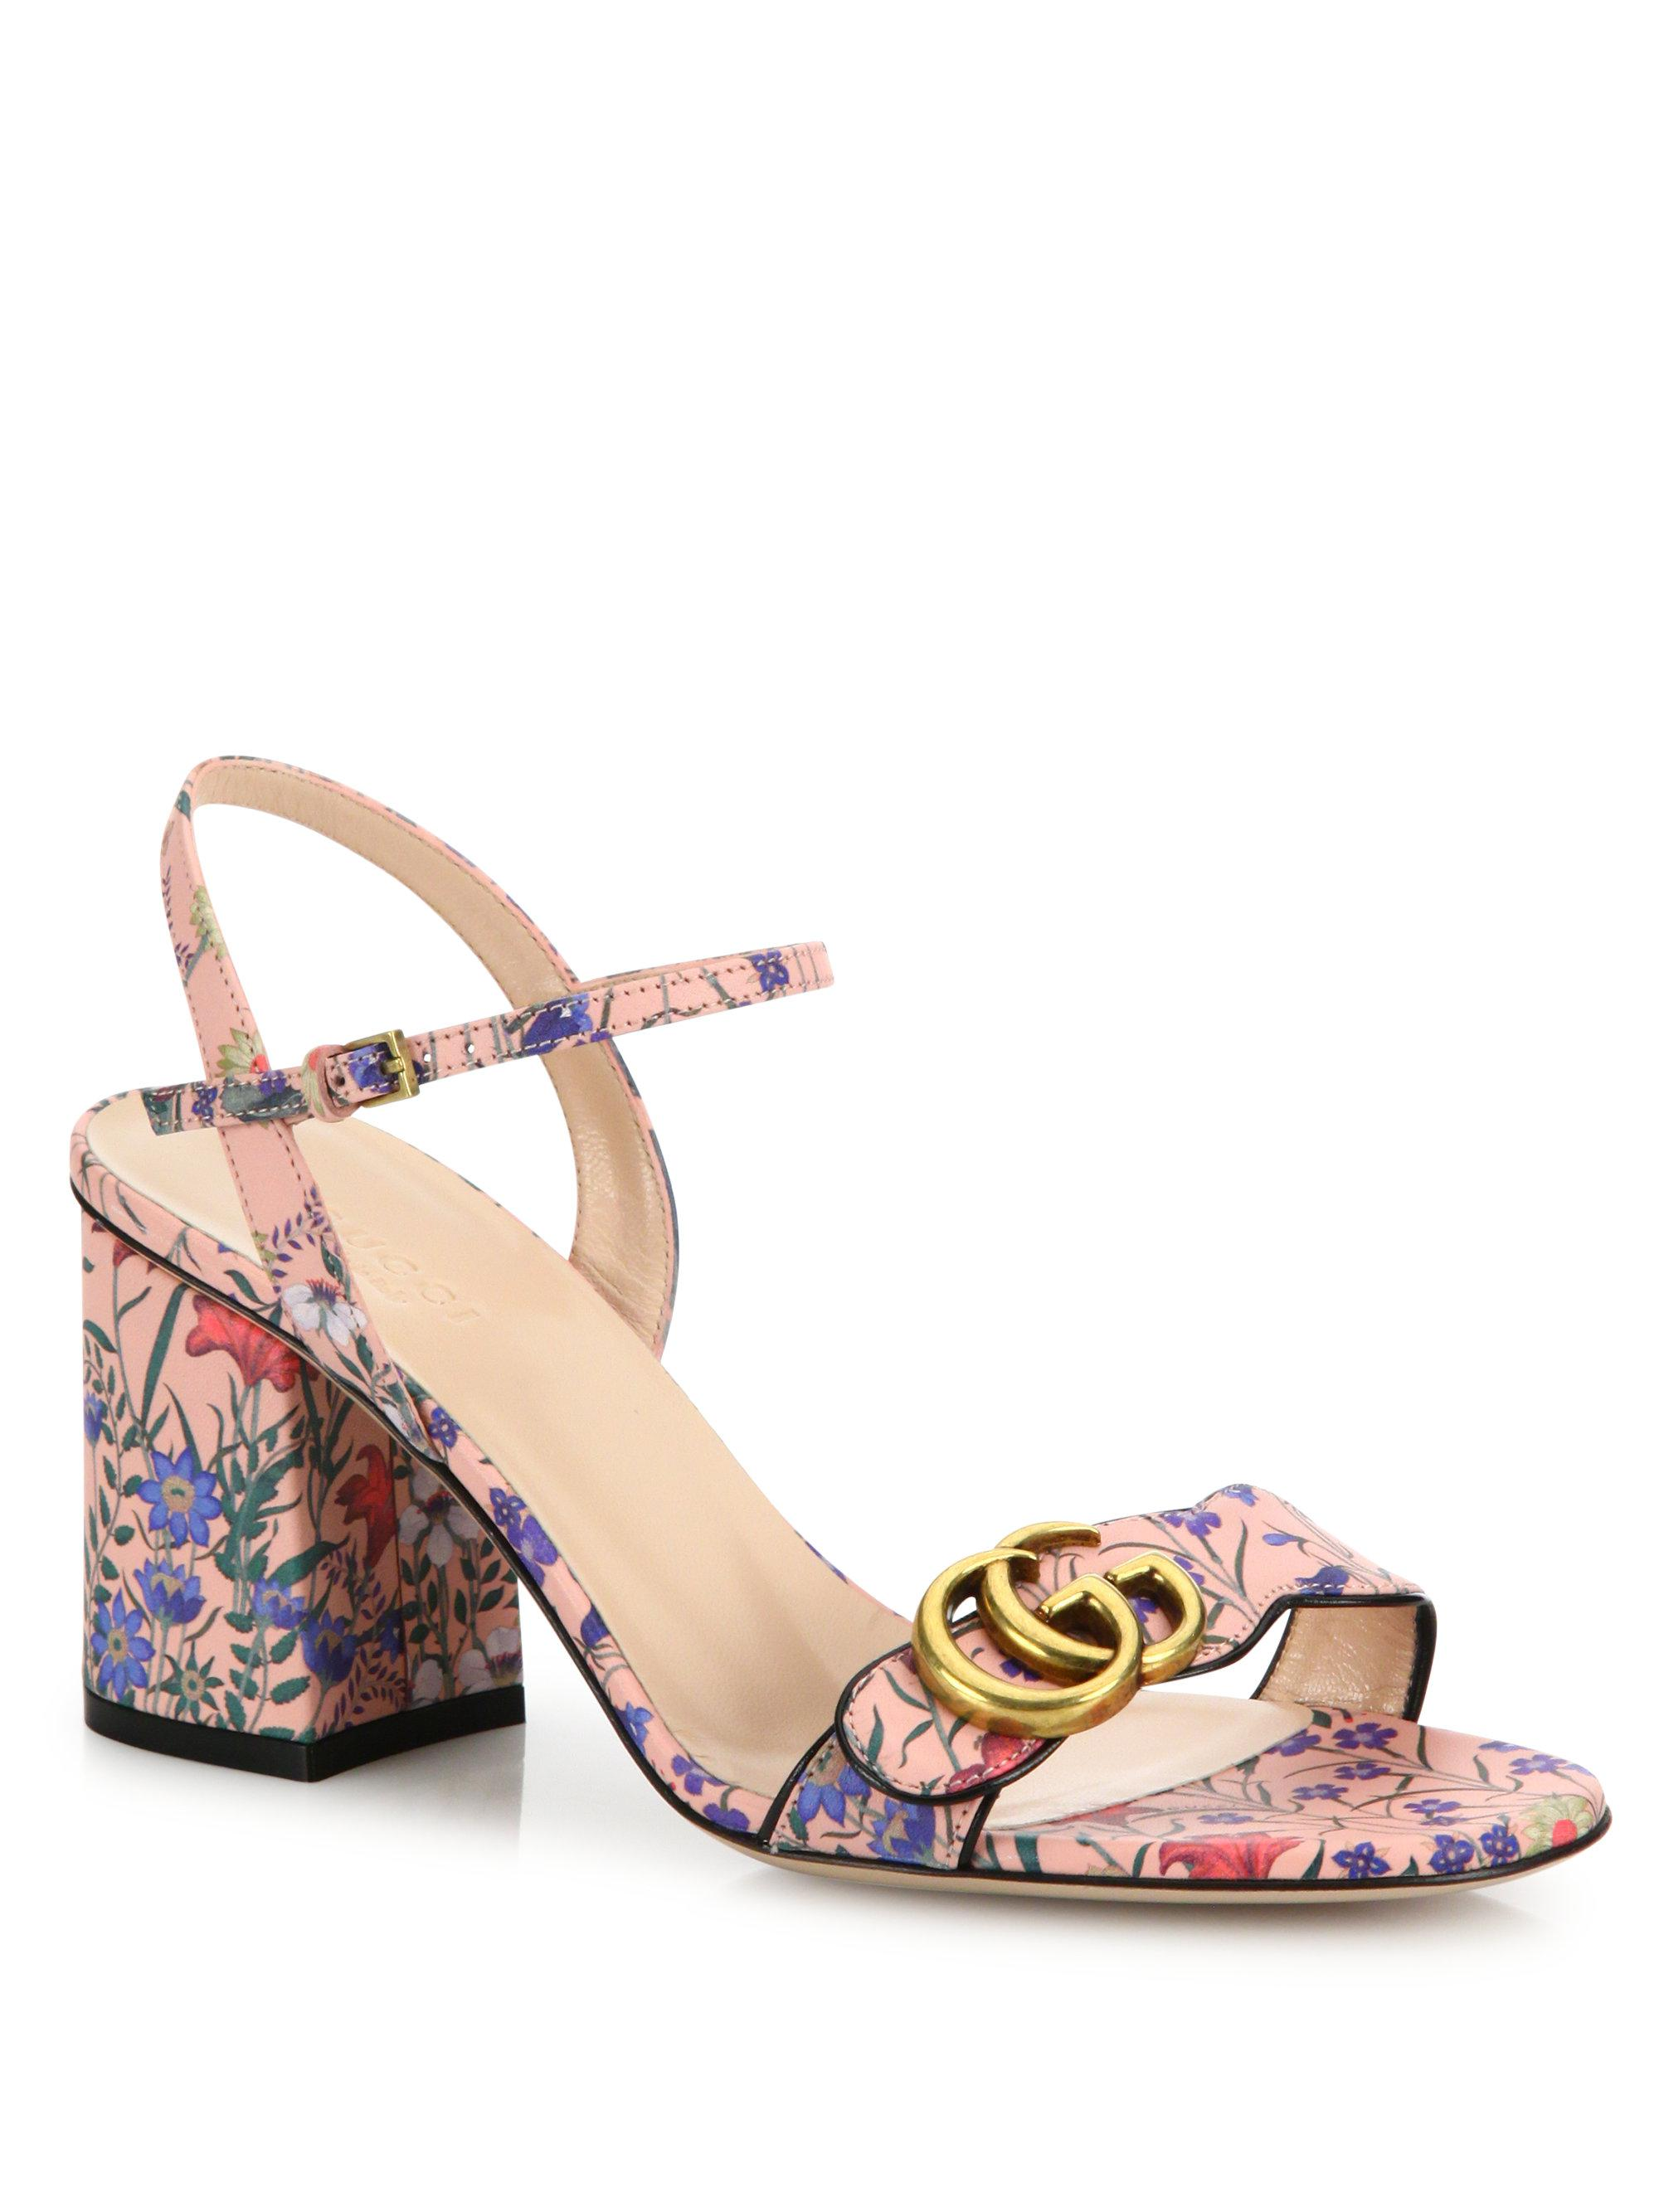 e8d494e11964df Lyst - Gucci Marmont Floral-print Leather Block-heel Sandals in Pink